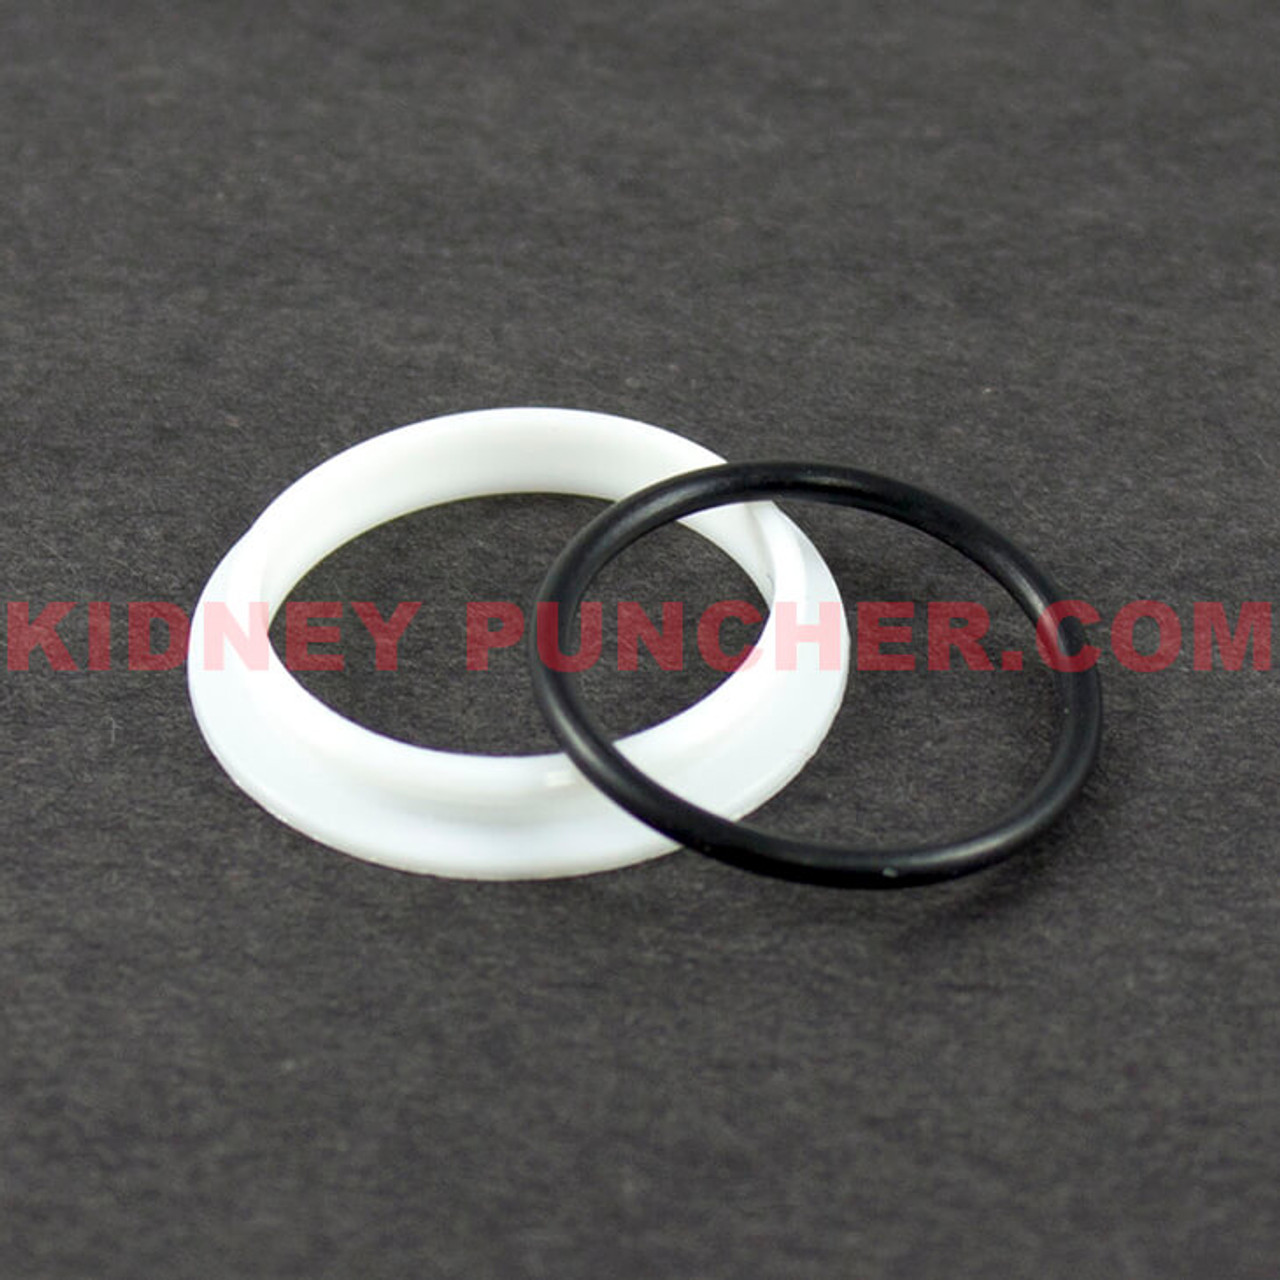 TFV4 Replacement O-Rings - 2pk - Kidney Puncher